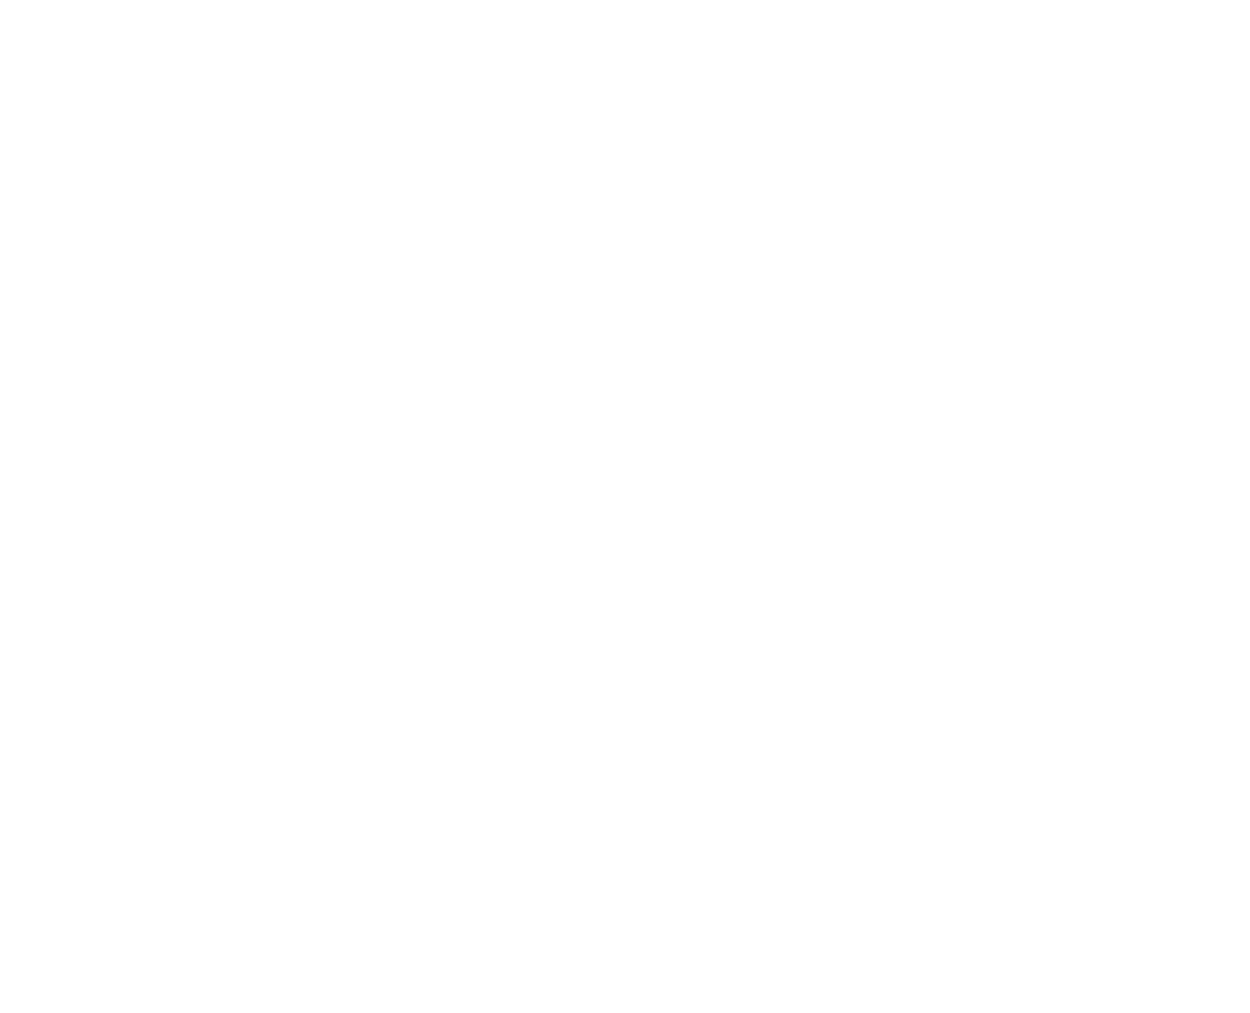 SEBA International